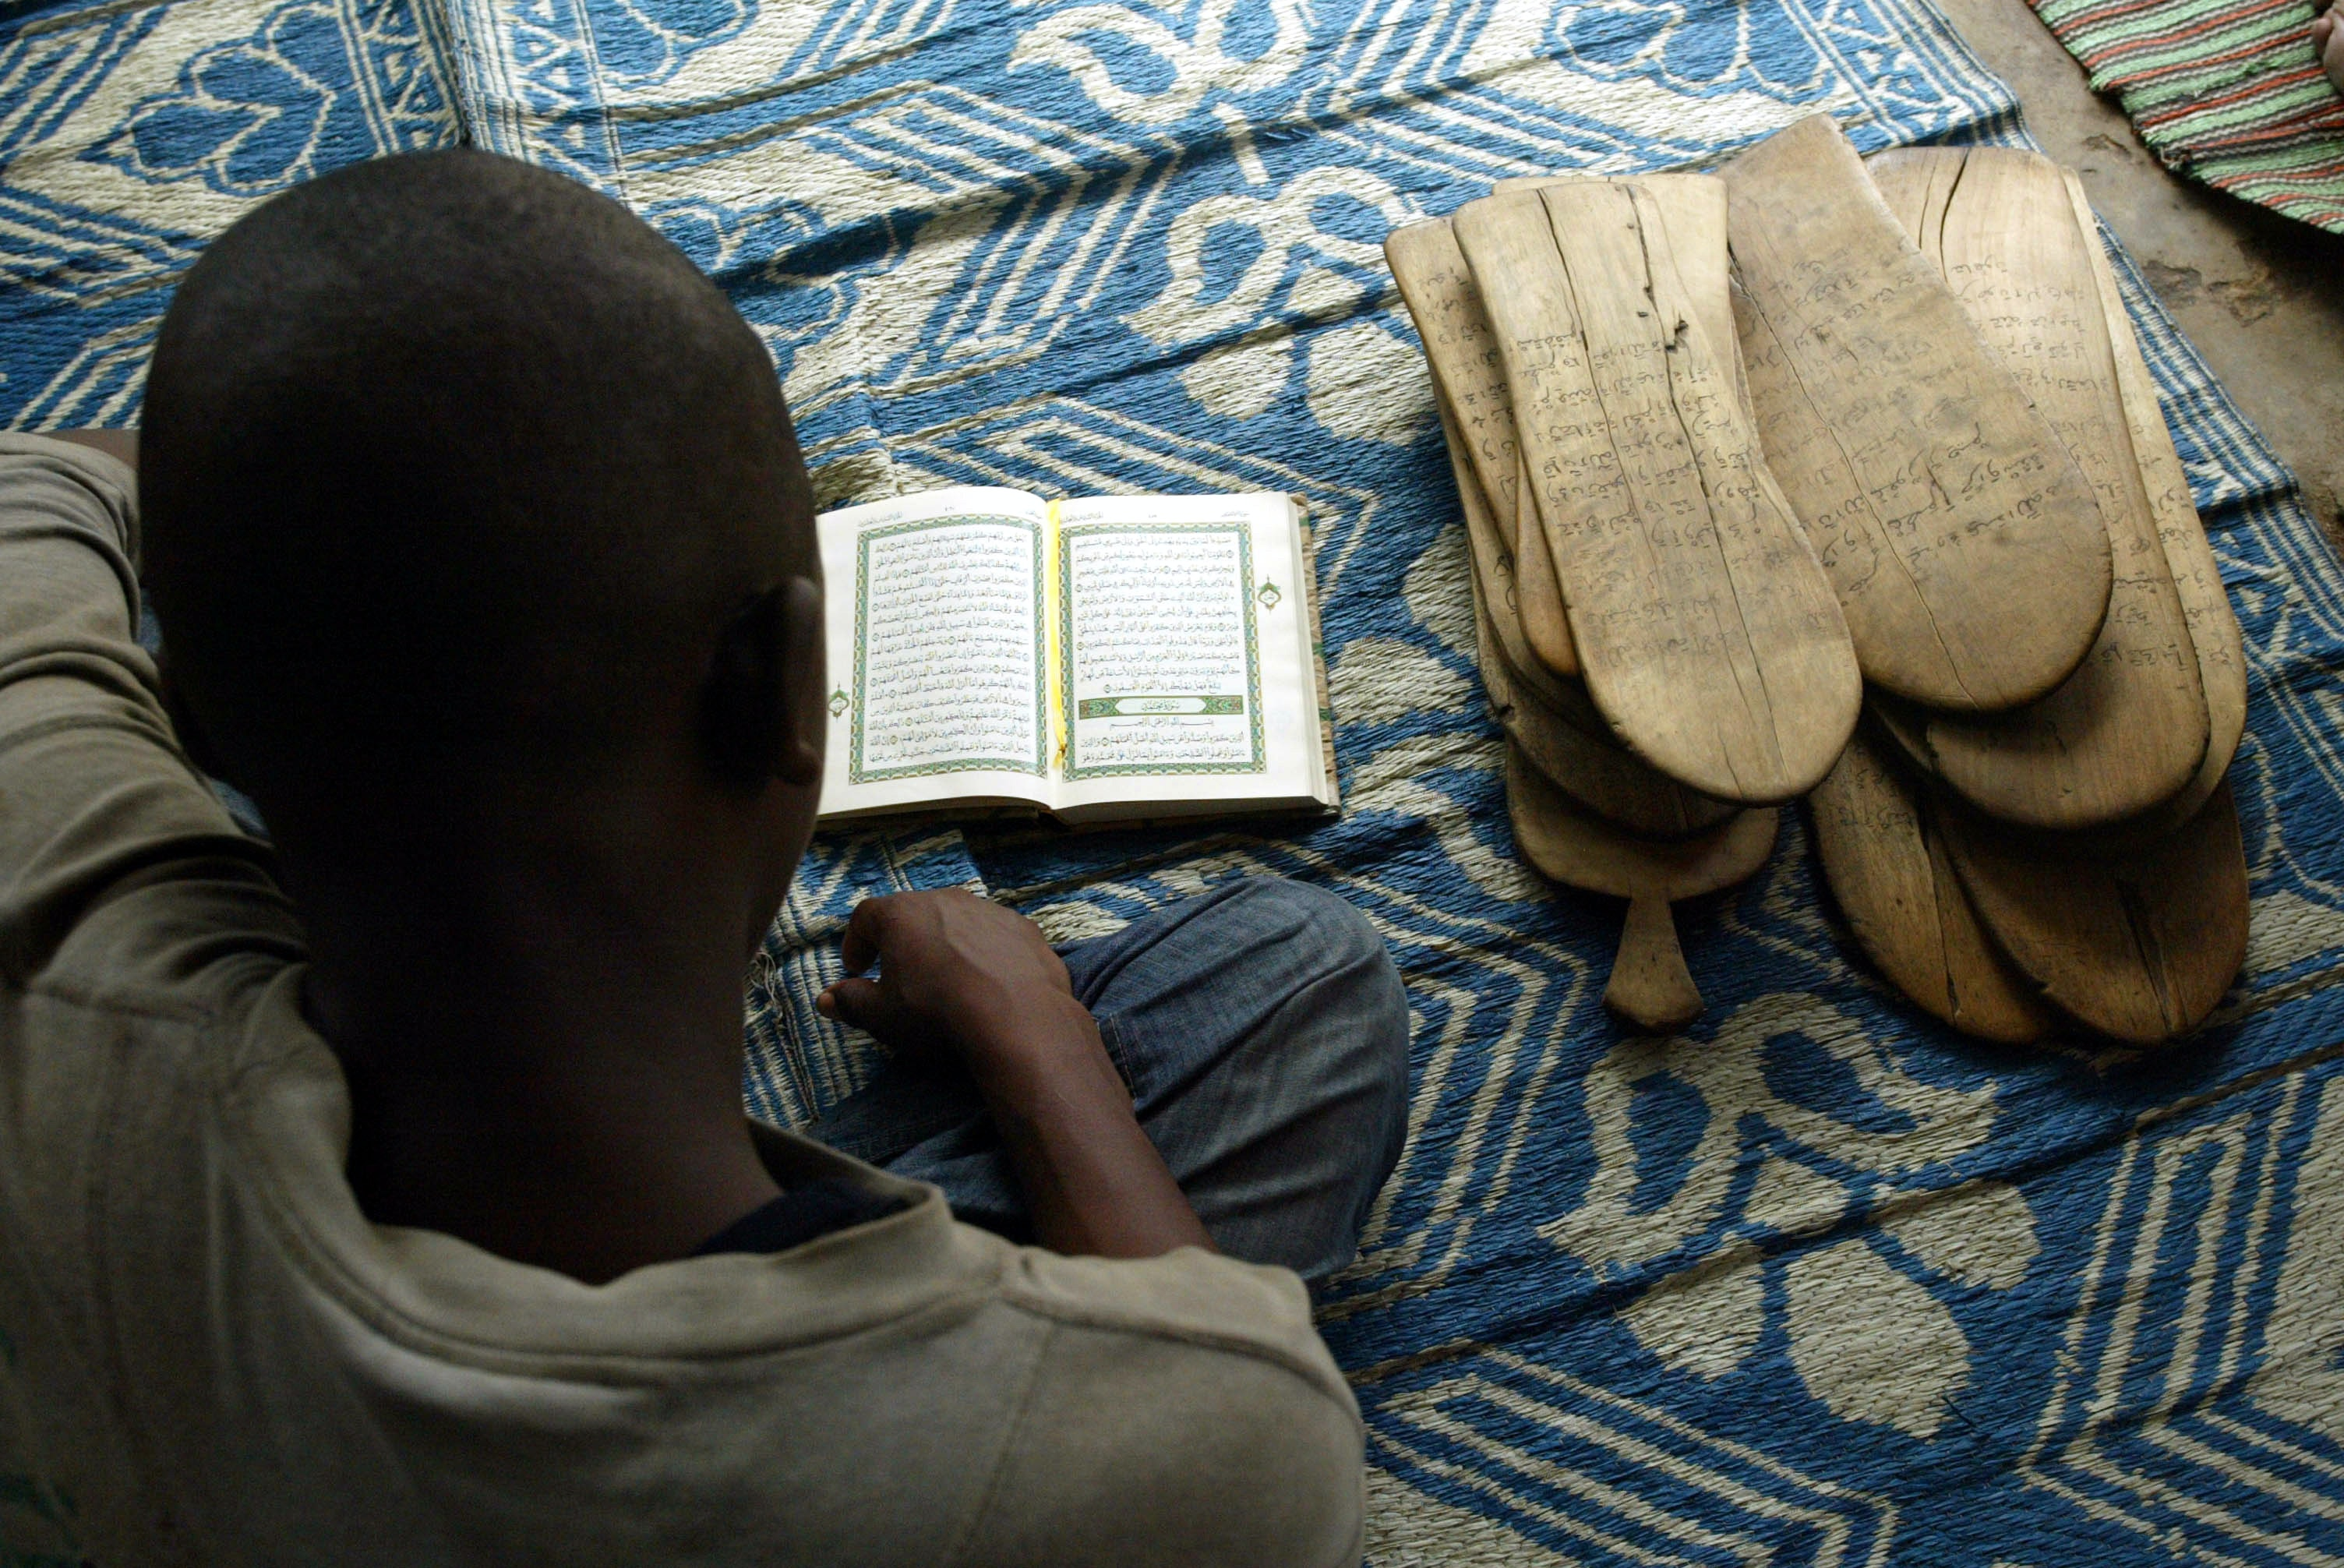 The belief that Africa's Quranic students are passive victims needs to change